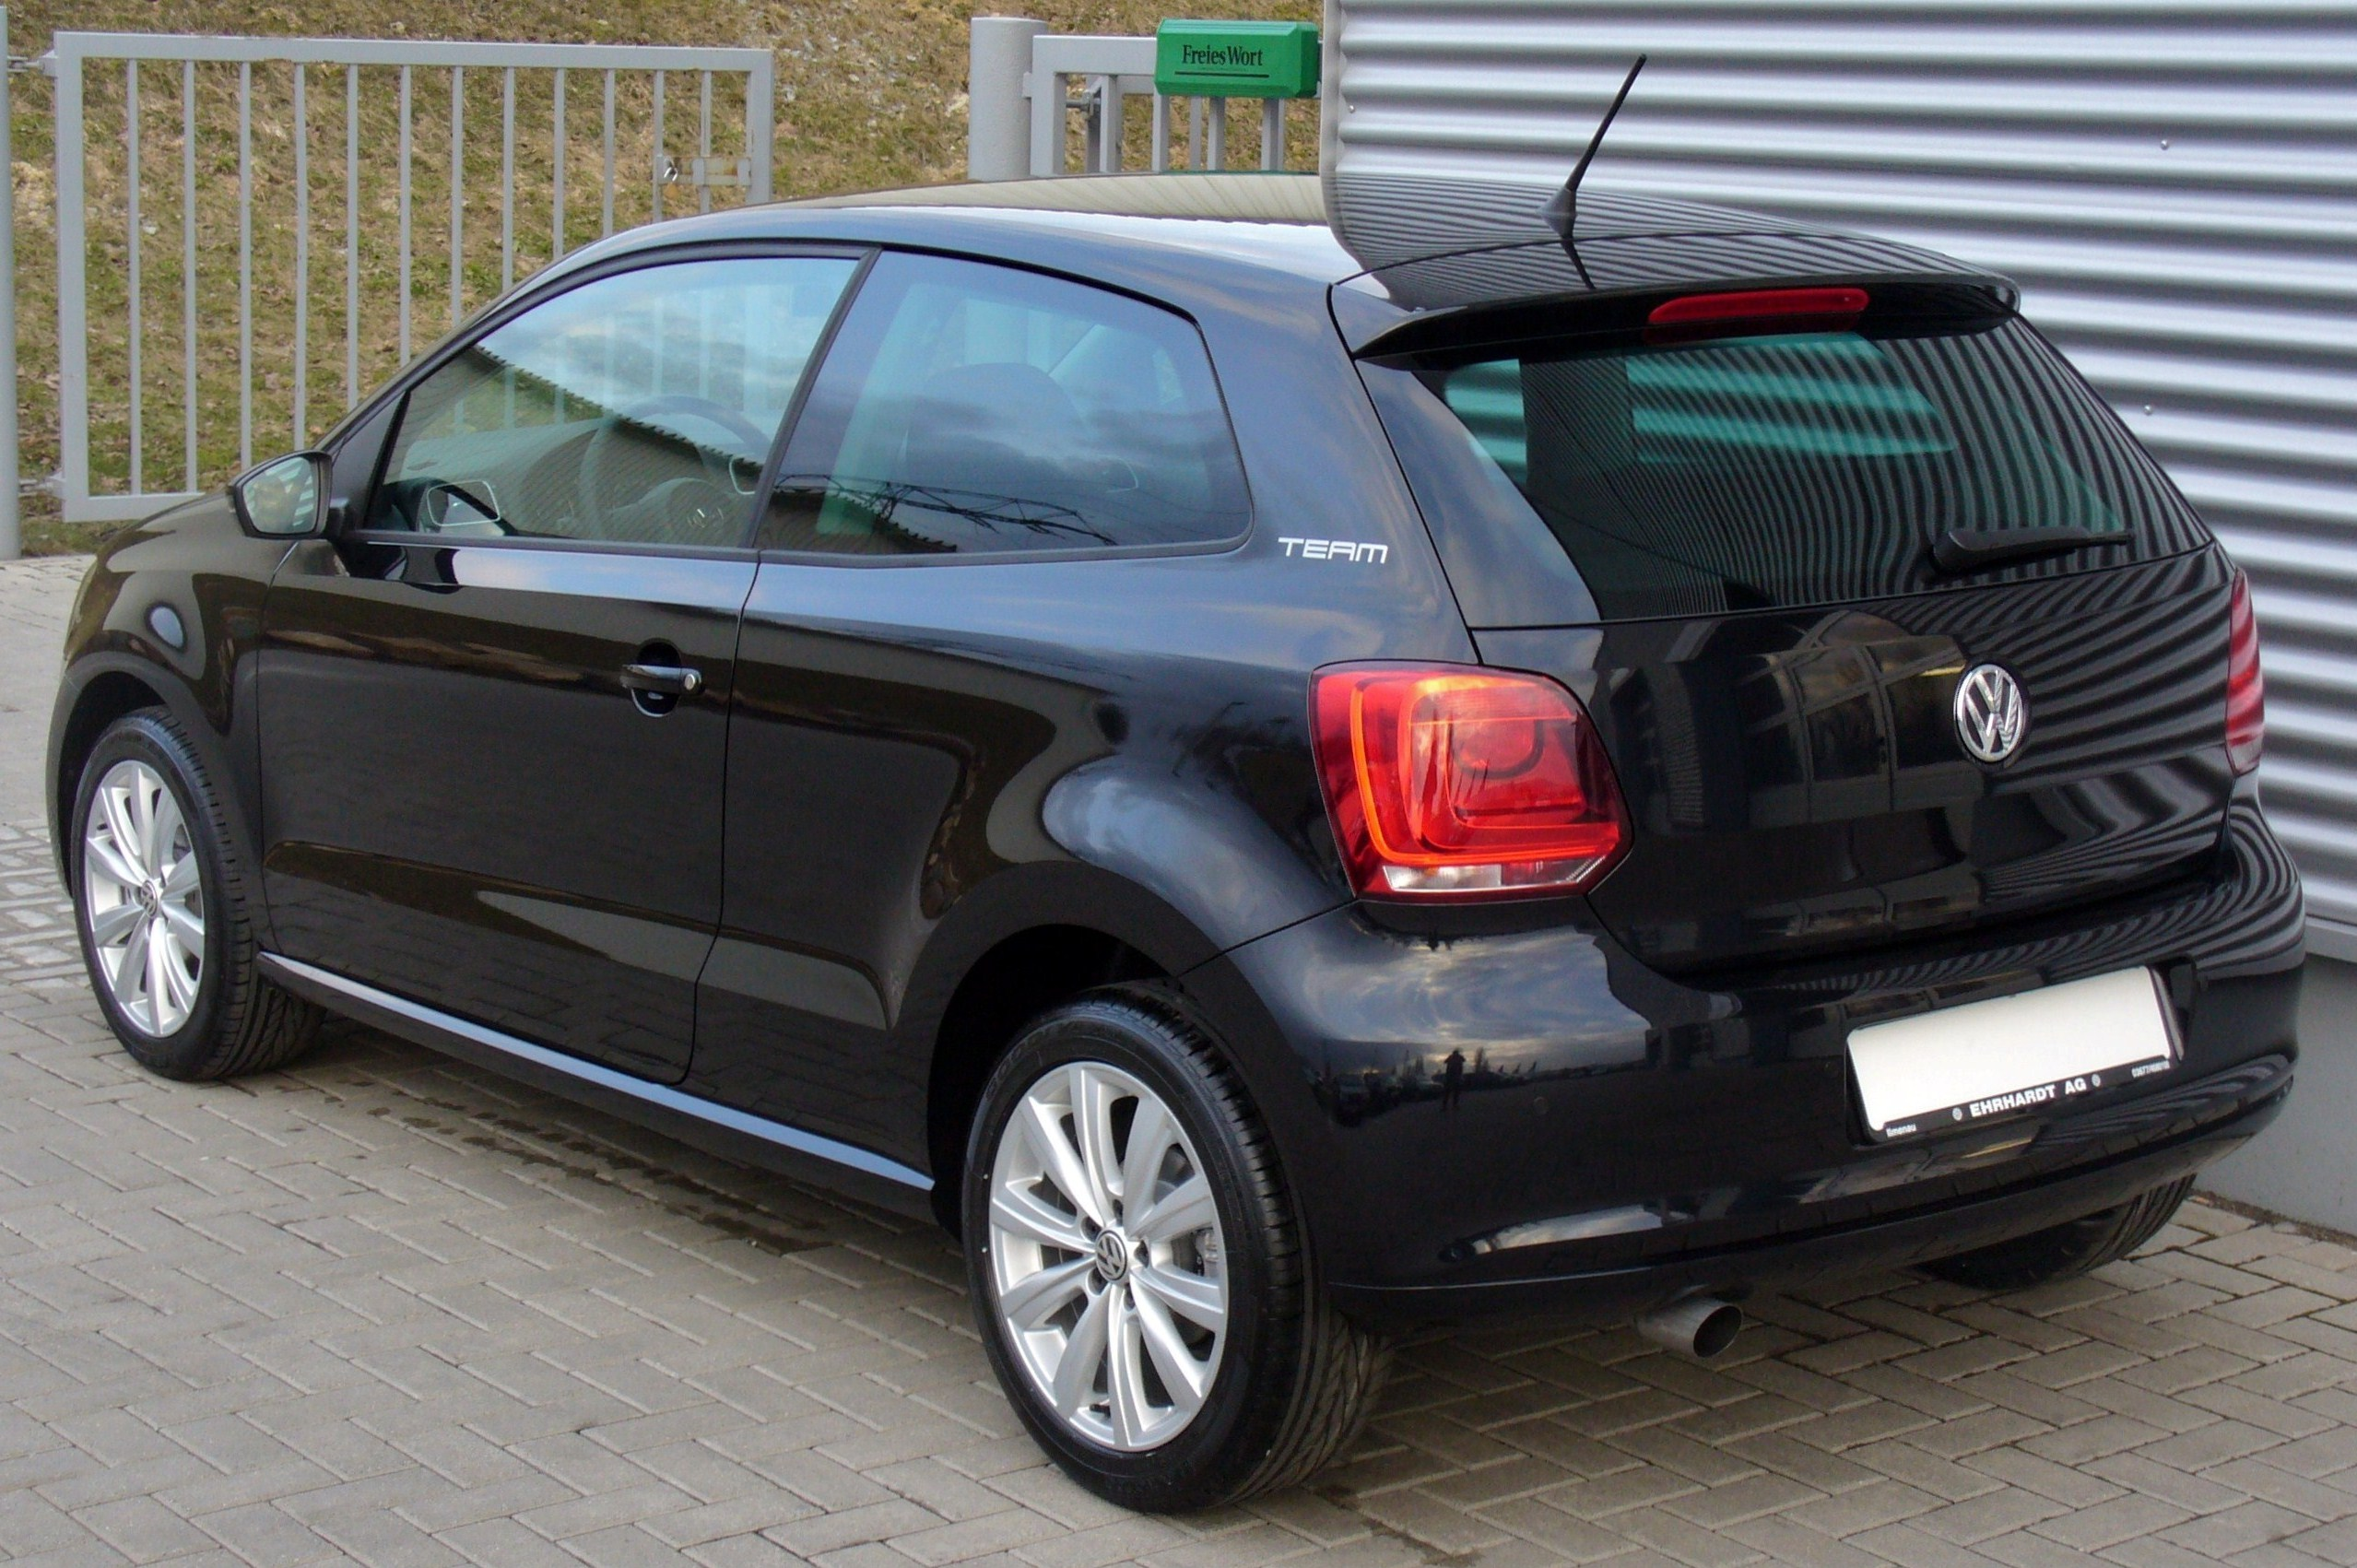 pics for vw polo 2011 black. Black Bedroom Furniture Sets. Home Design Ideas